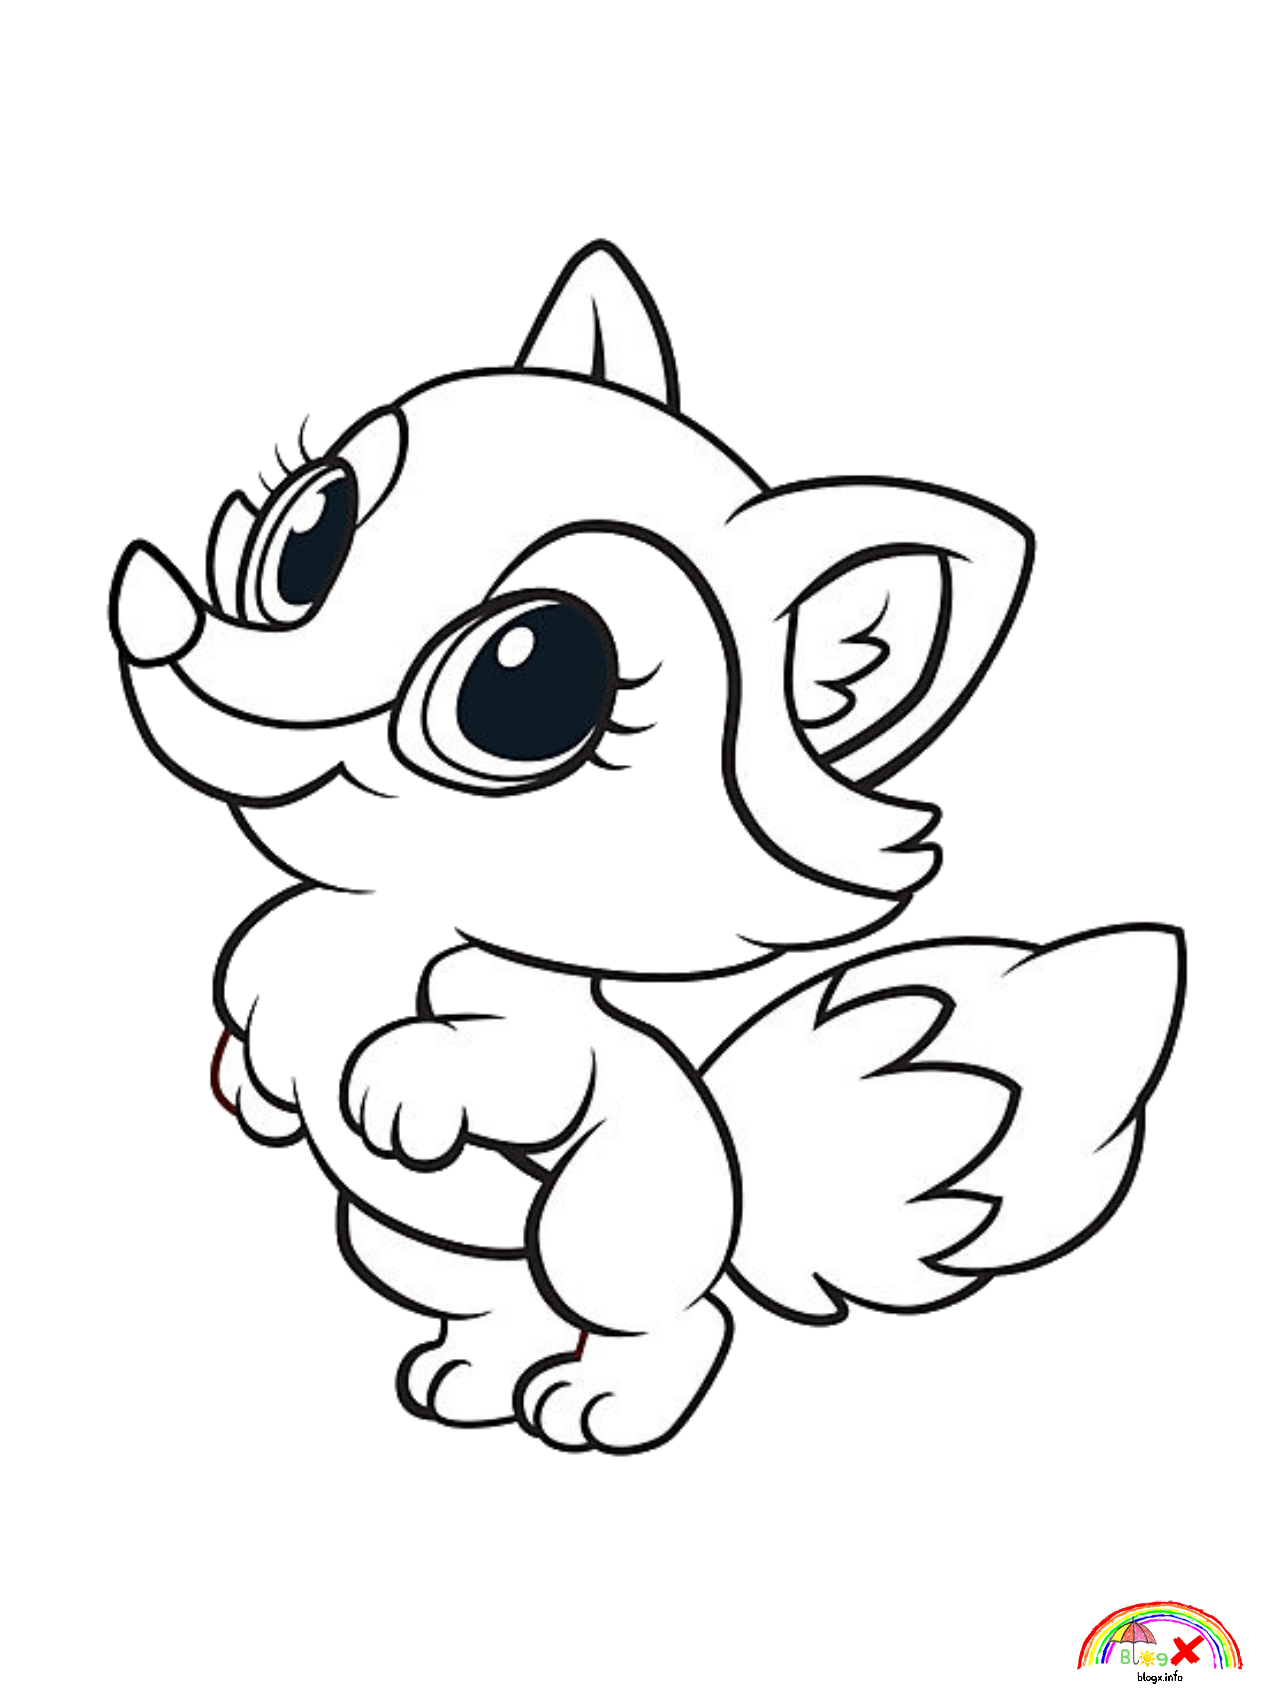 Free Download Collection Of Cute Baby Fox Coloring Pages Coloring Pages Allow Kids To Accompany In 2020 Fox Coloring Page Animal Coloring Pages Cute Coloring Pages